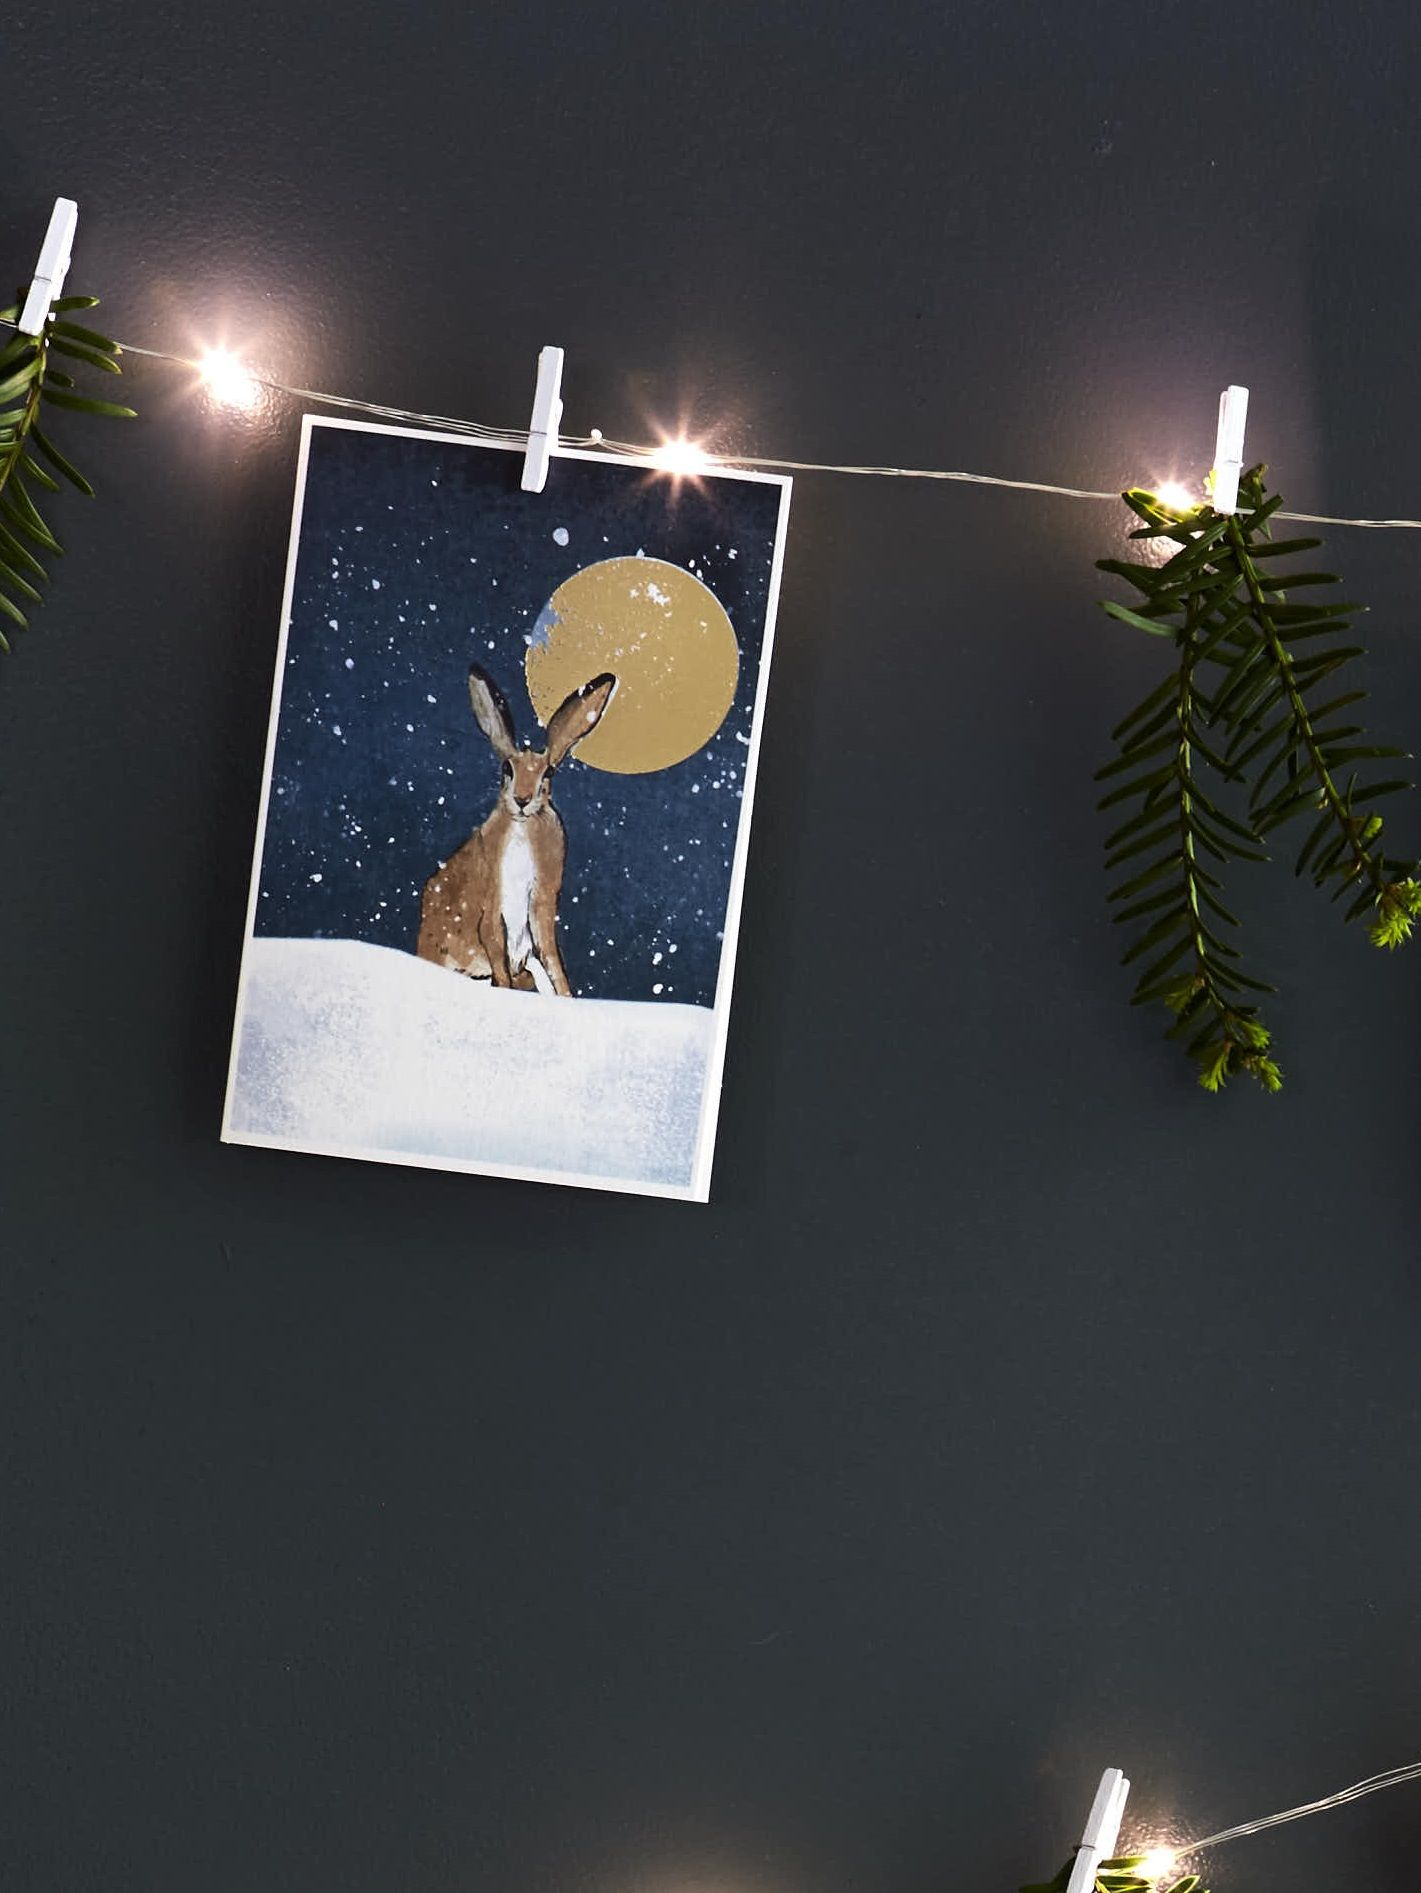 Moonlit hare Christmas card. Credits Rachel Whiting